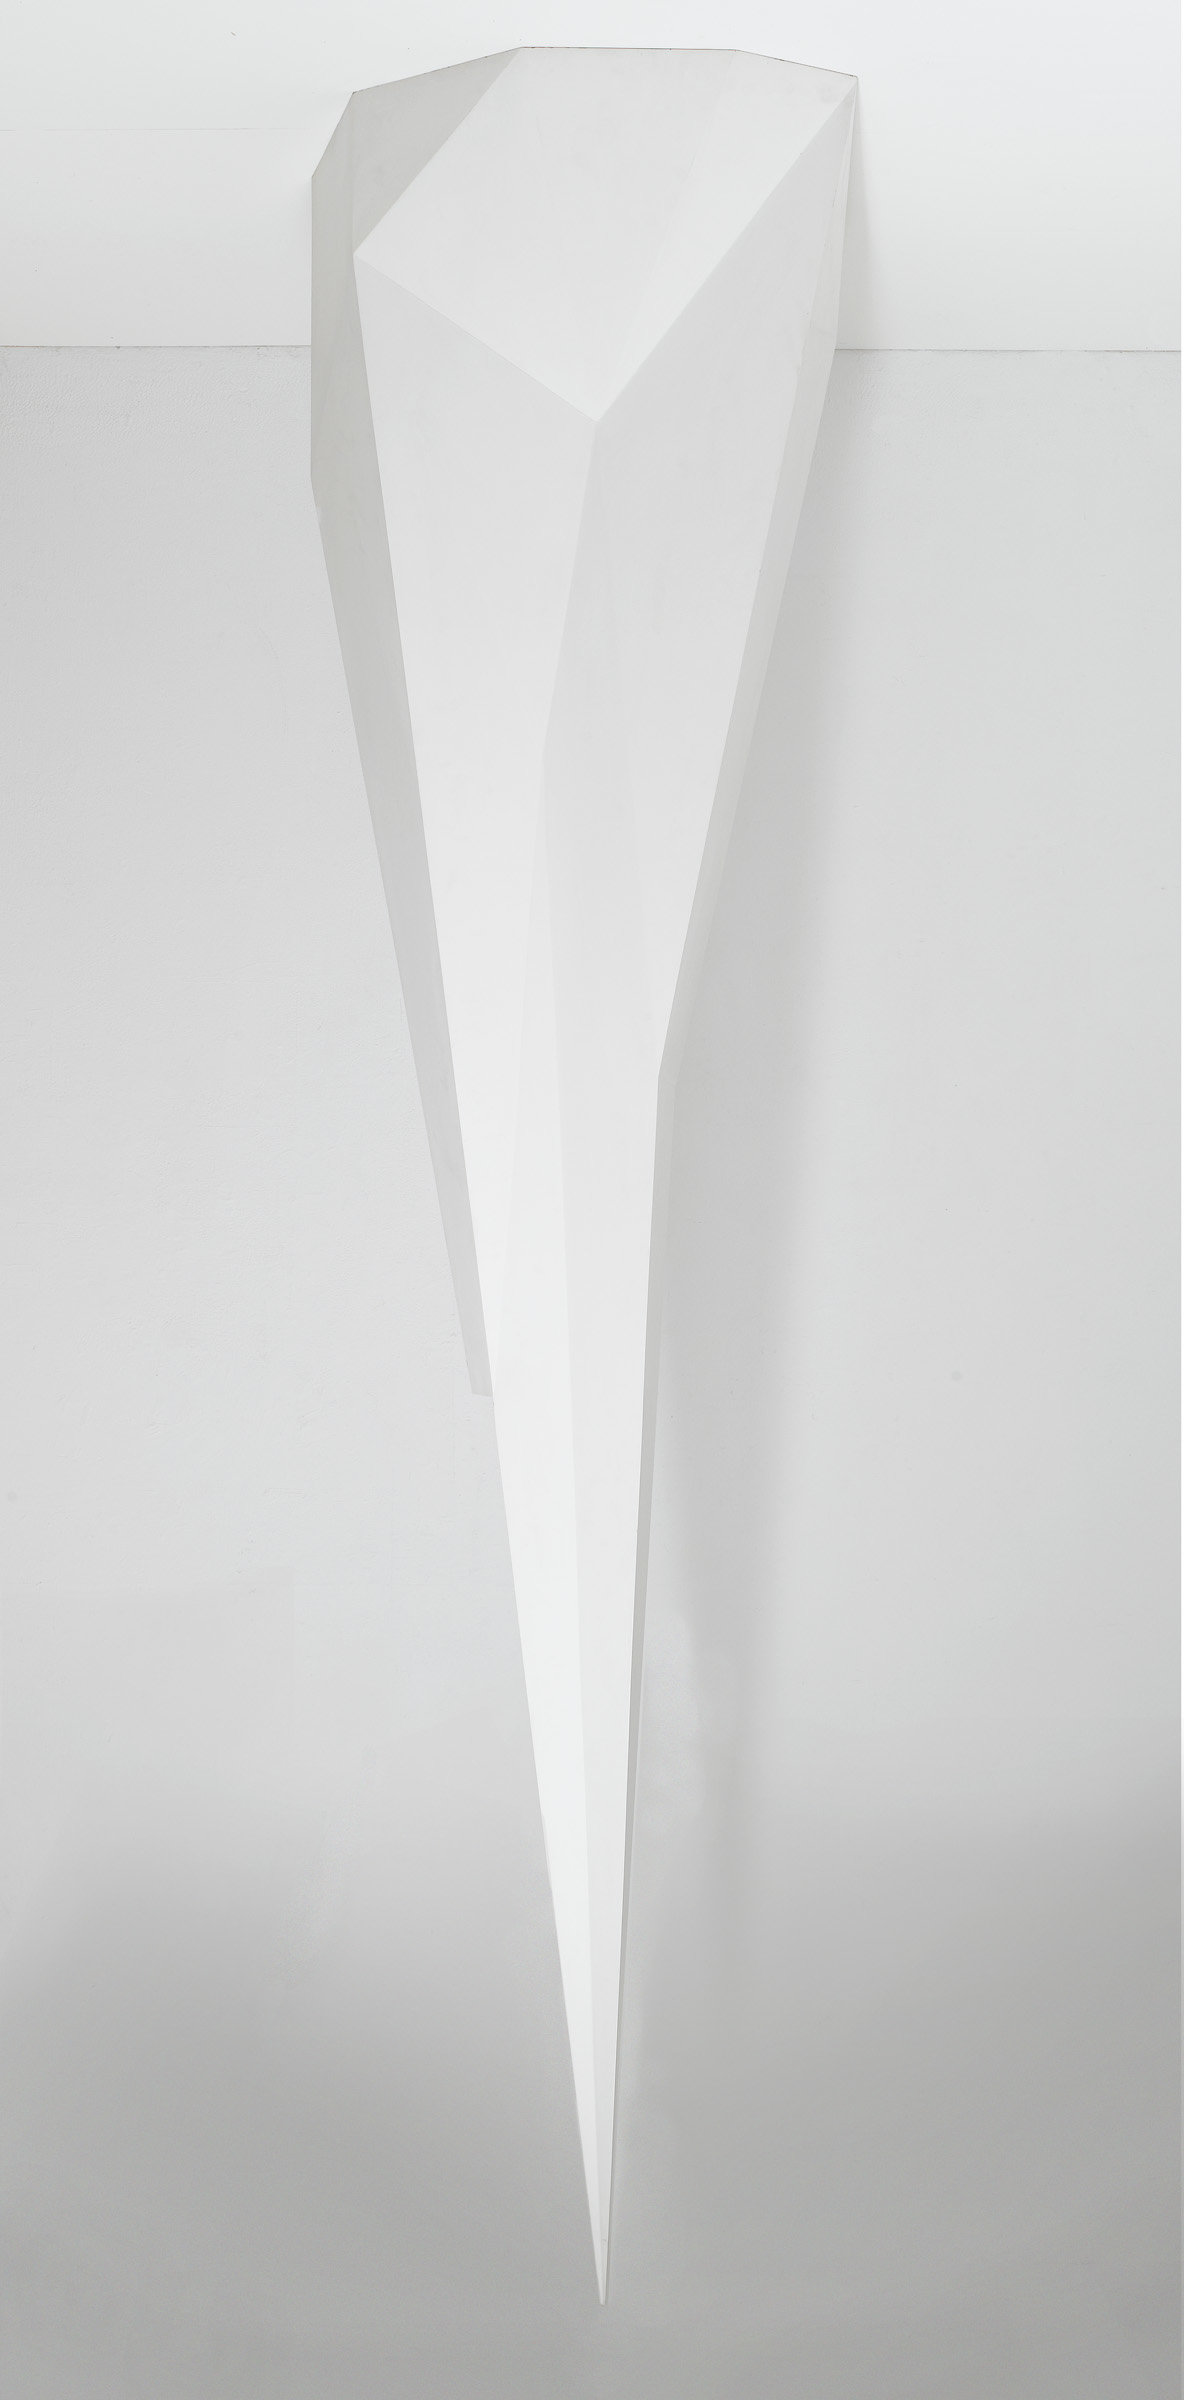 ", 1989. painted wood, 11' 6"" x 3' 4"" x 2' 11"" (350.5 cm x 101.6 cm x 88.9 cm)."